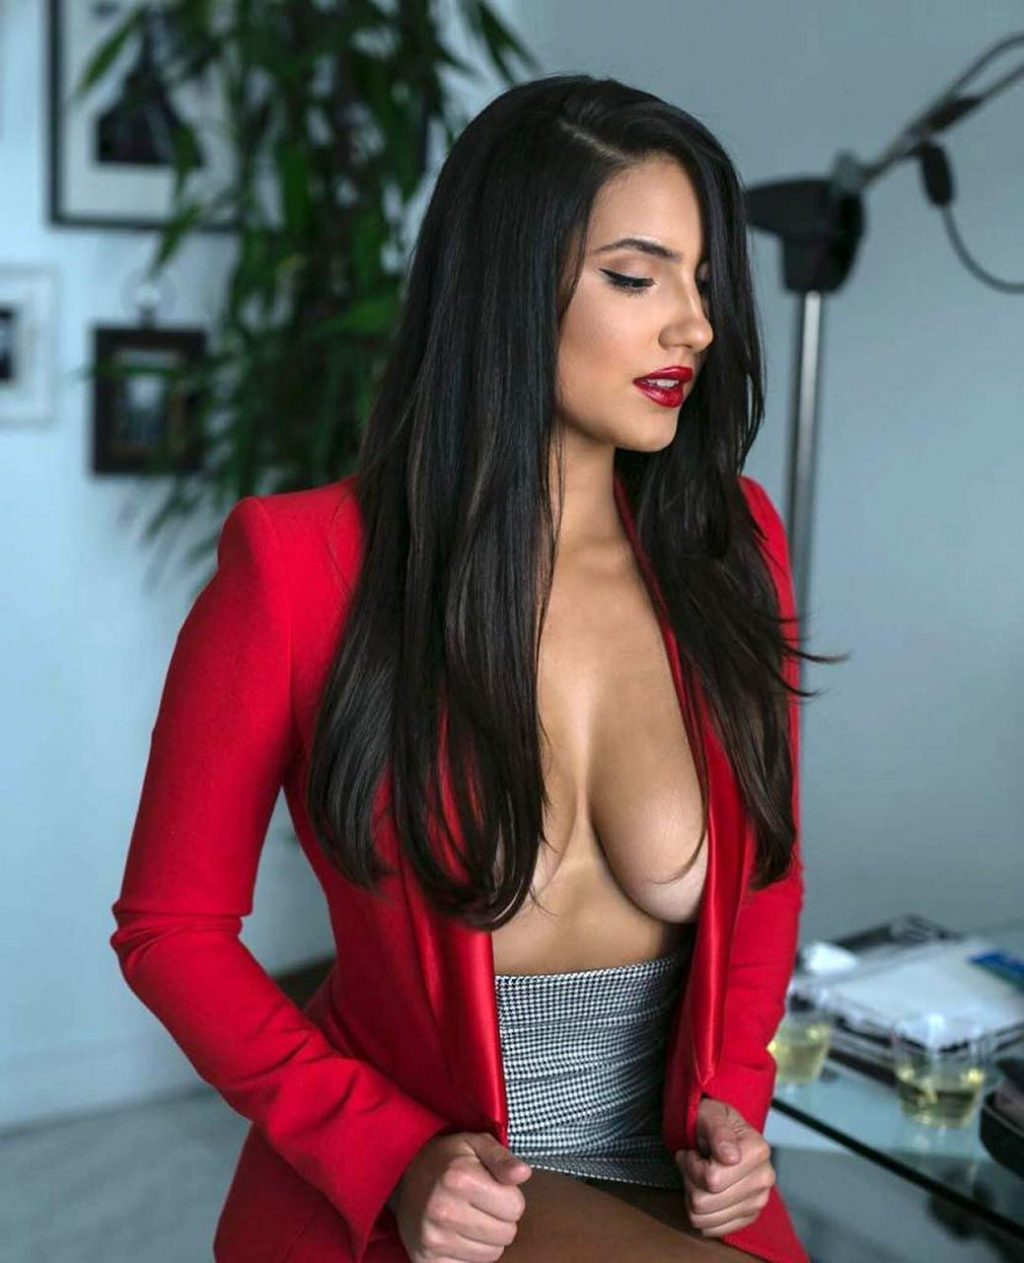 Tao Wickrath Nude & Hot (85 Photos + LEAKED Porn 2021)